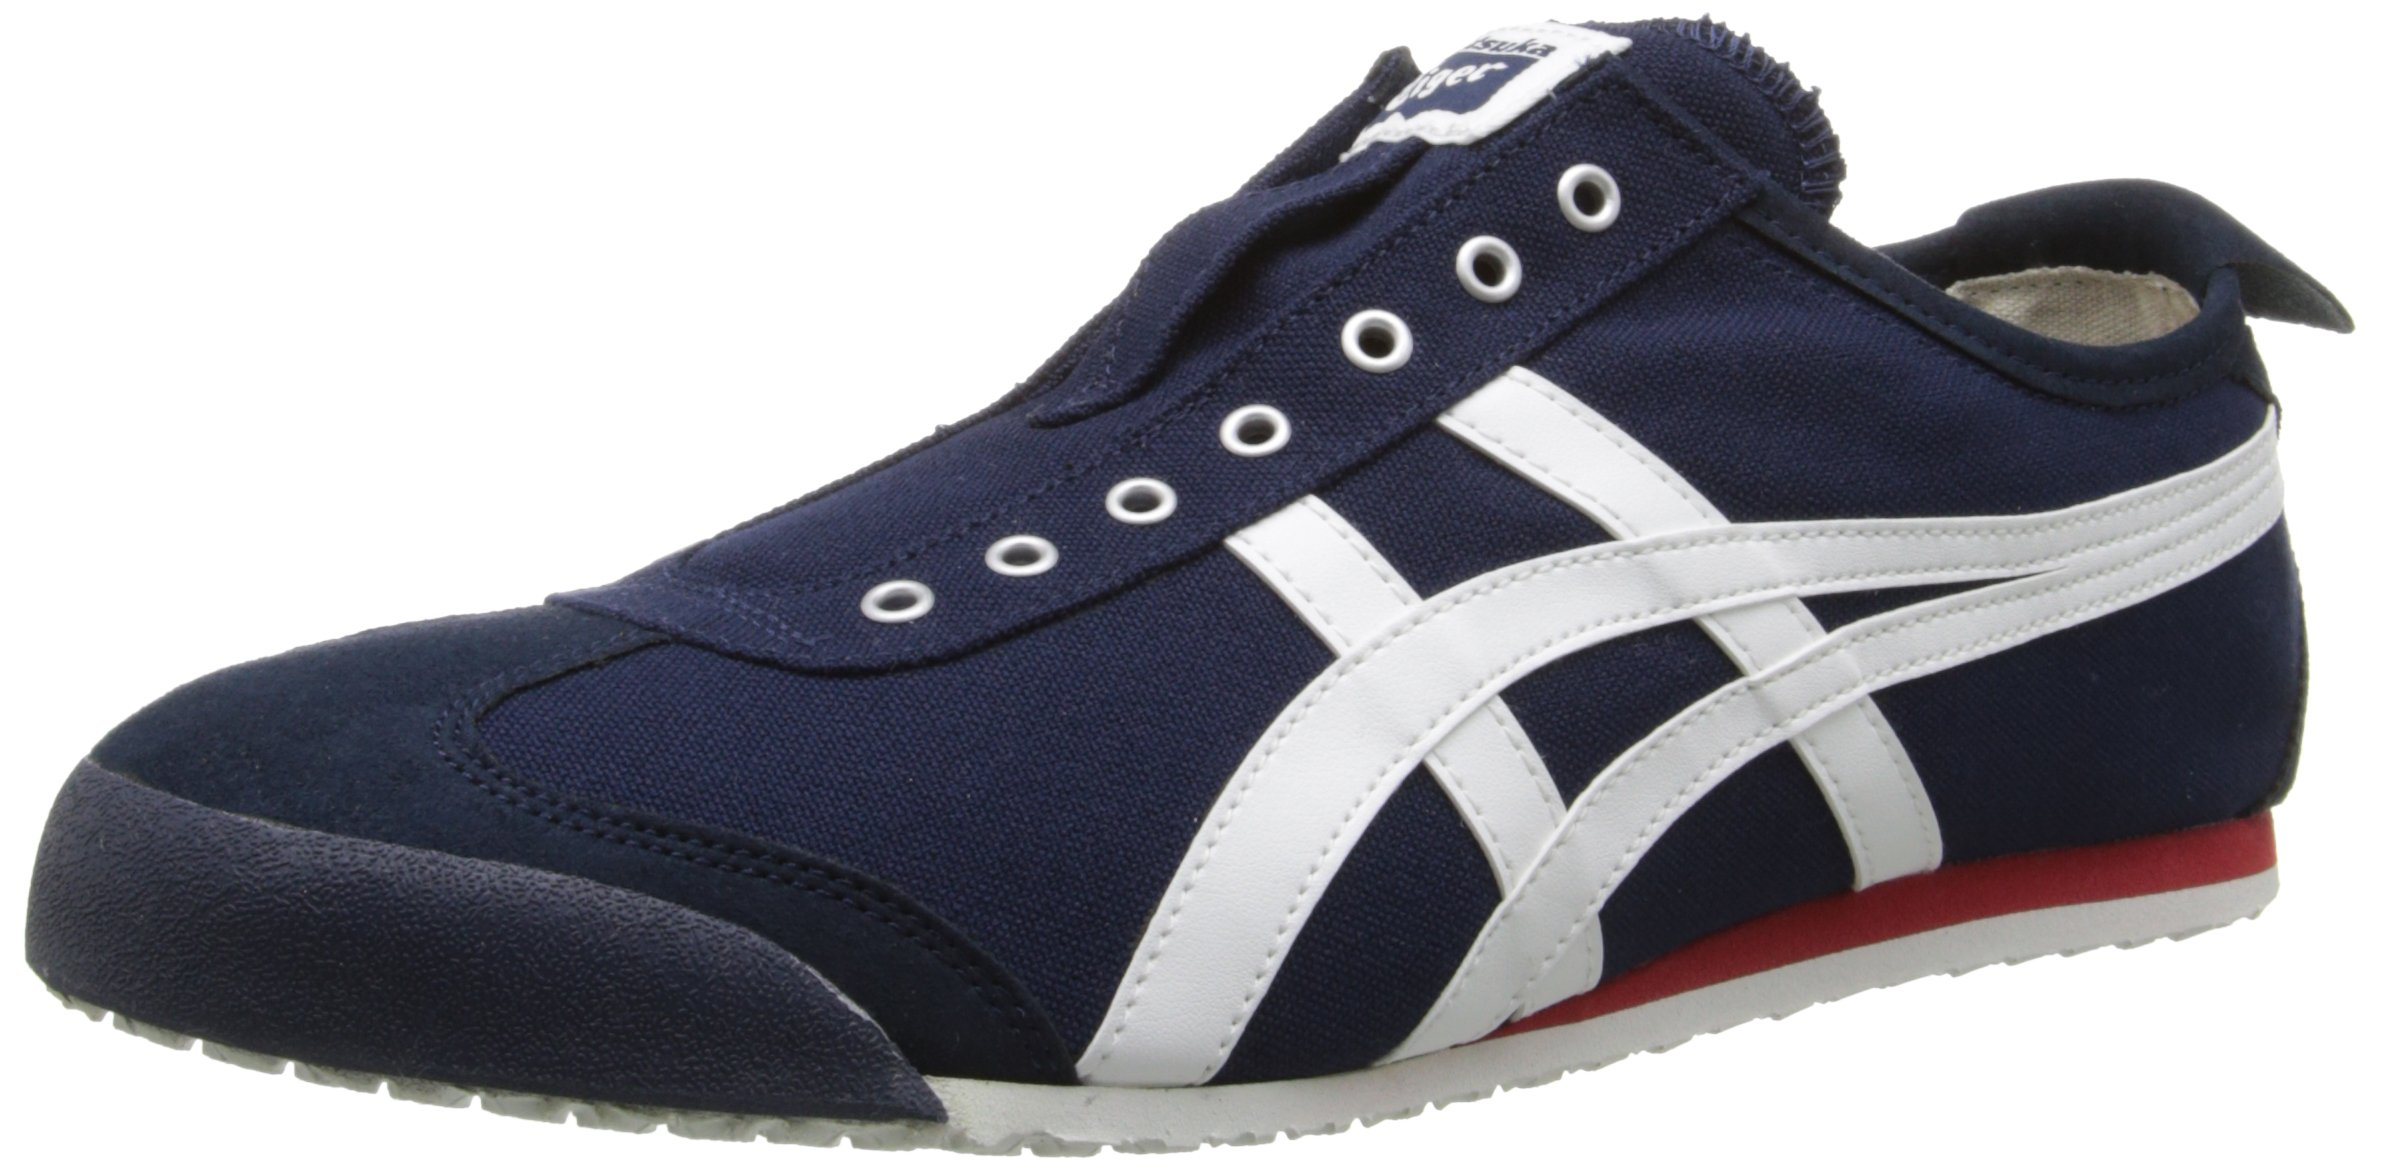 new style dd3ba e7dfb Onitsuka Tiger Unisex Mexico 66 Slip-on Shoes D3K0N, Navy/Off White, 9.5 M  US